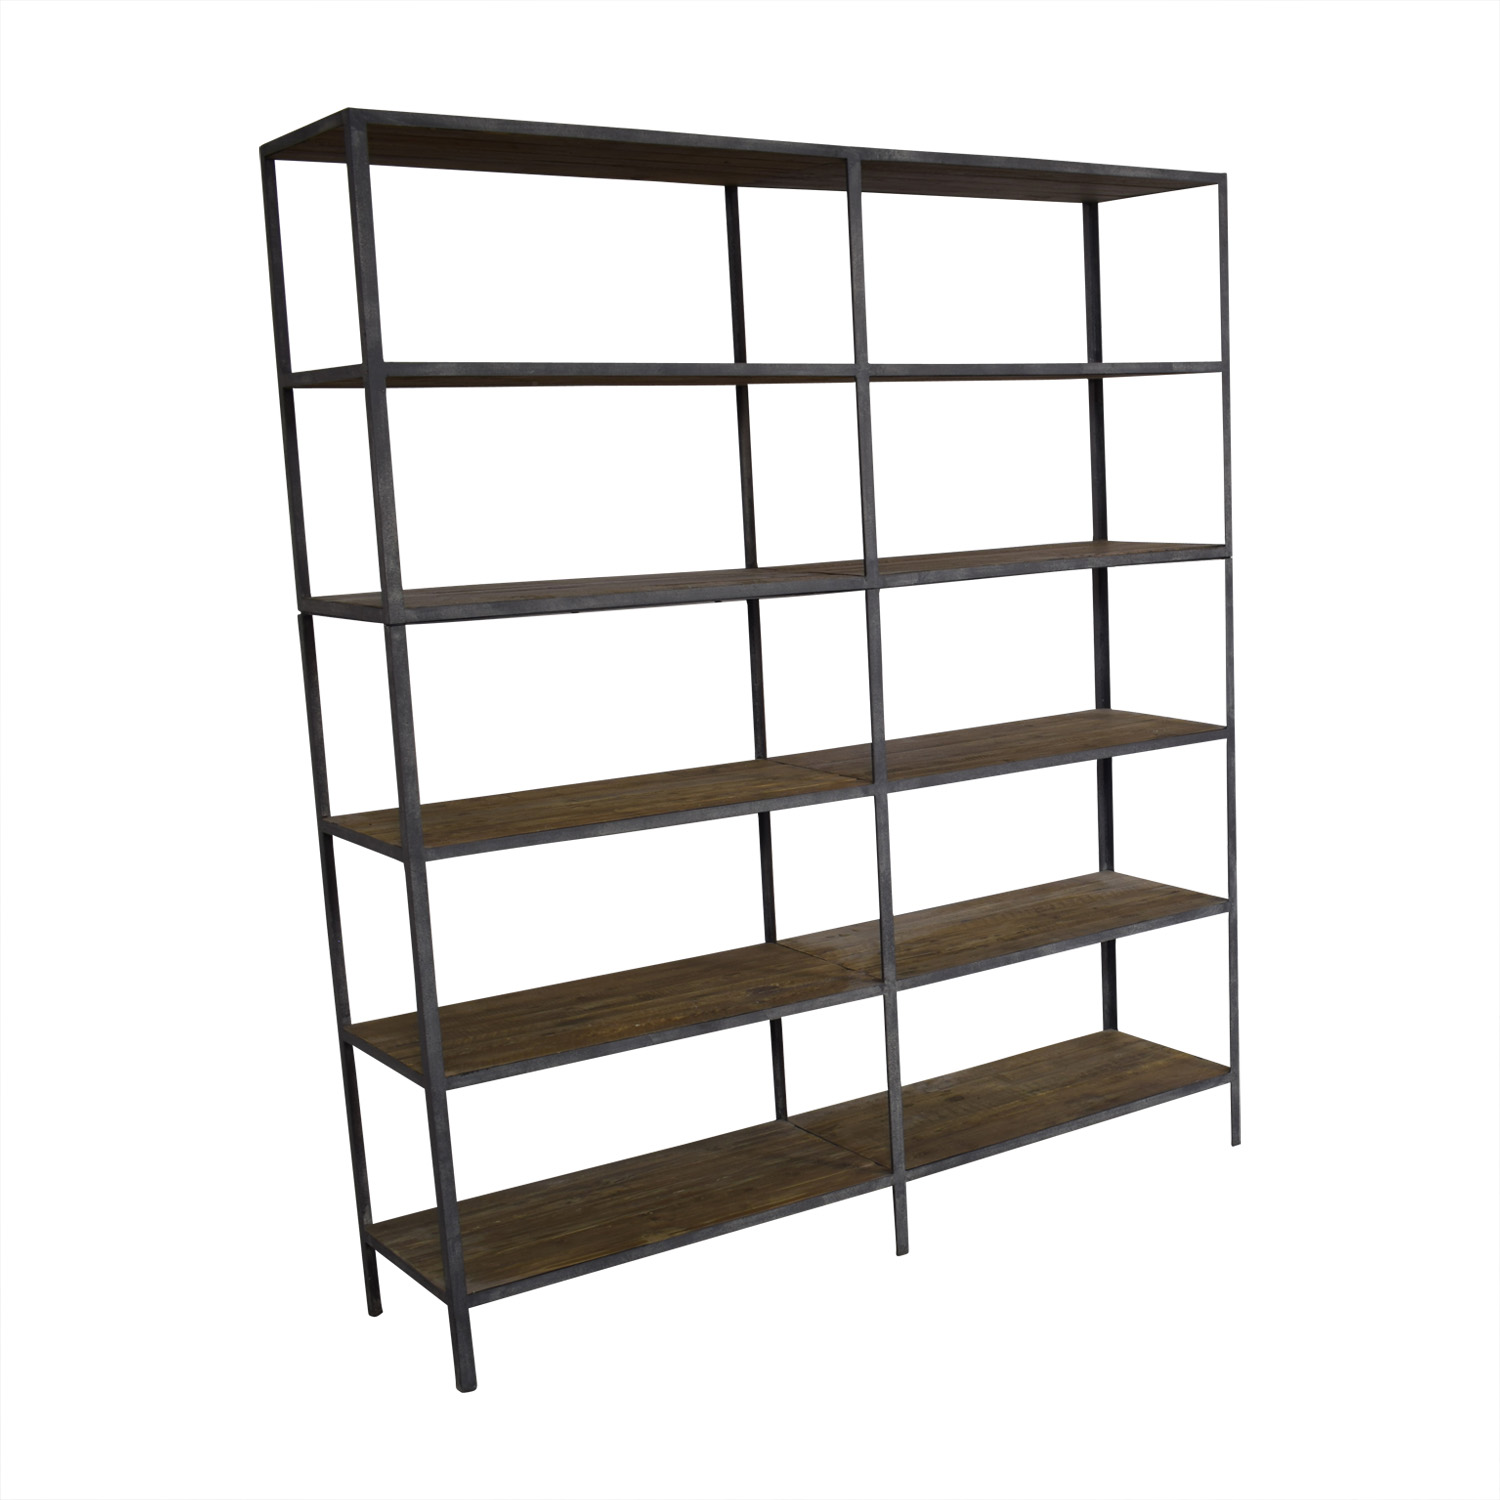 Restoration Hardware Restoration Hardware Vintage Industrial Double Shelving for sale